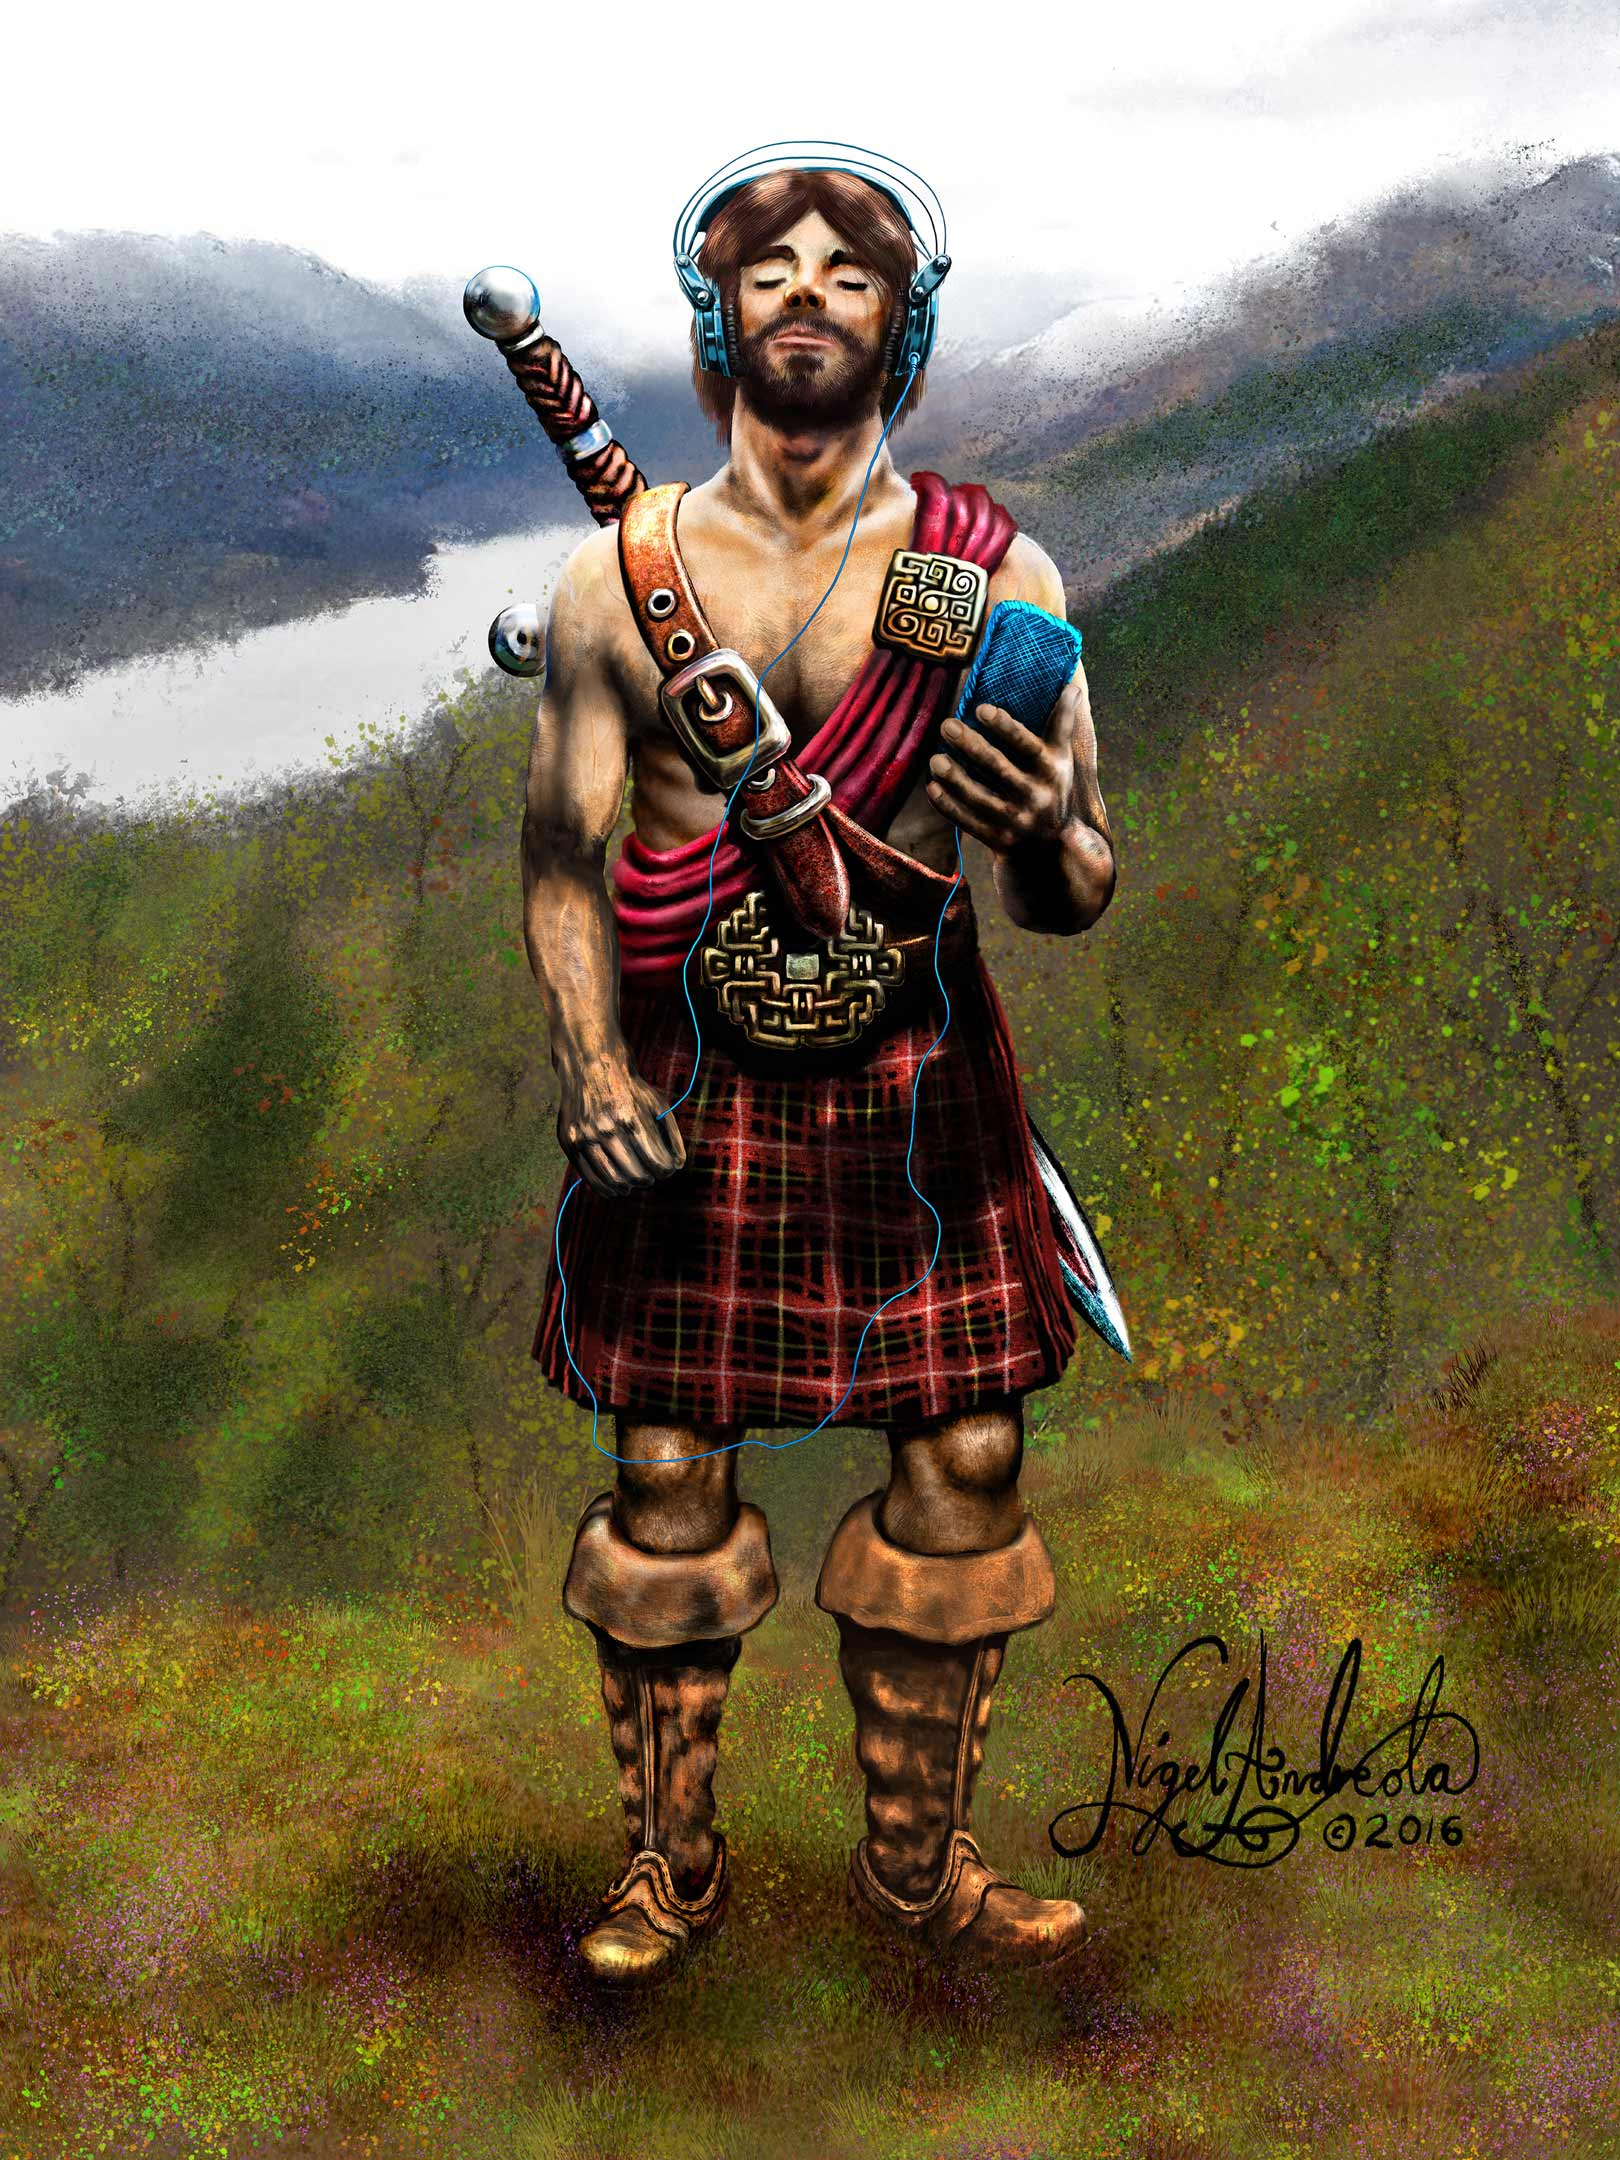 Celtic Warrior with an iPod